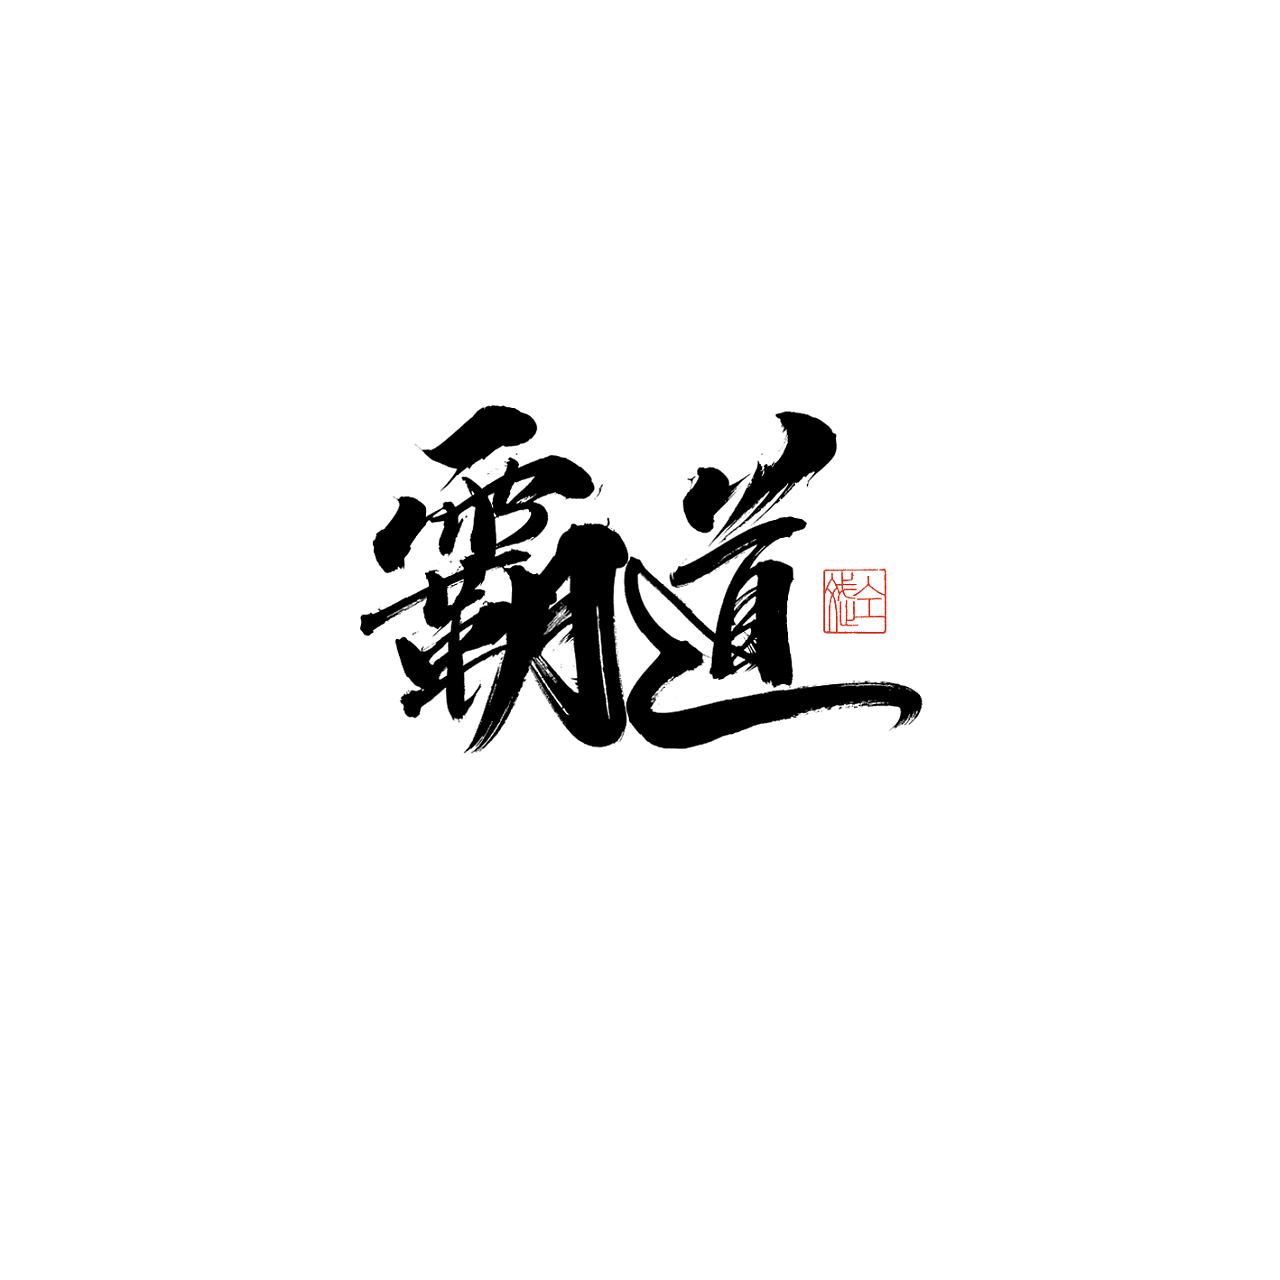 Chinese Creative Font Design-Write in fragments of time and live a good life.